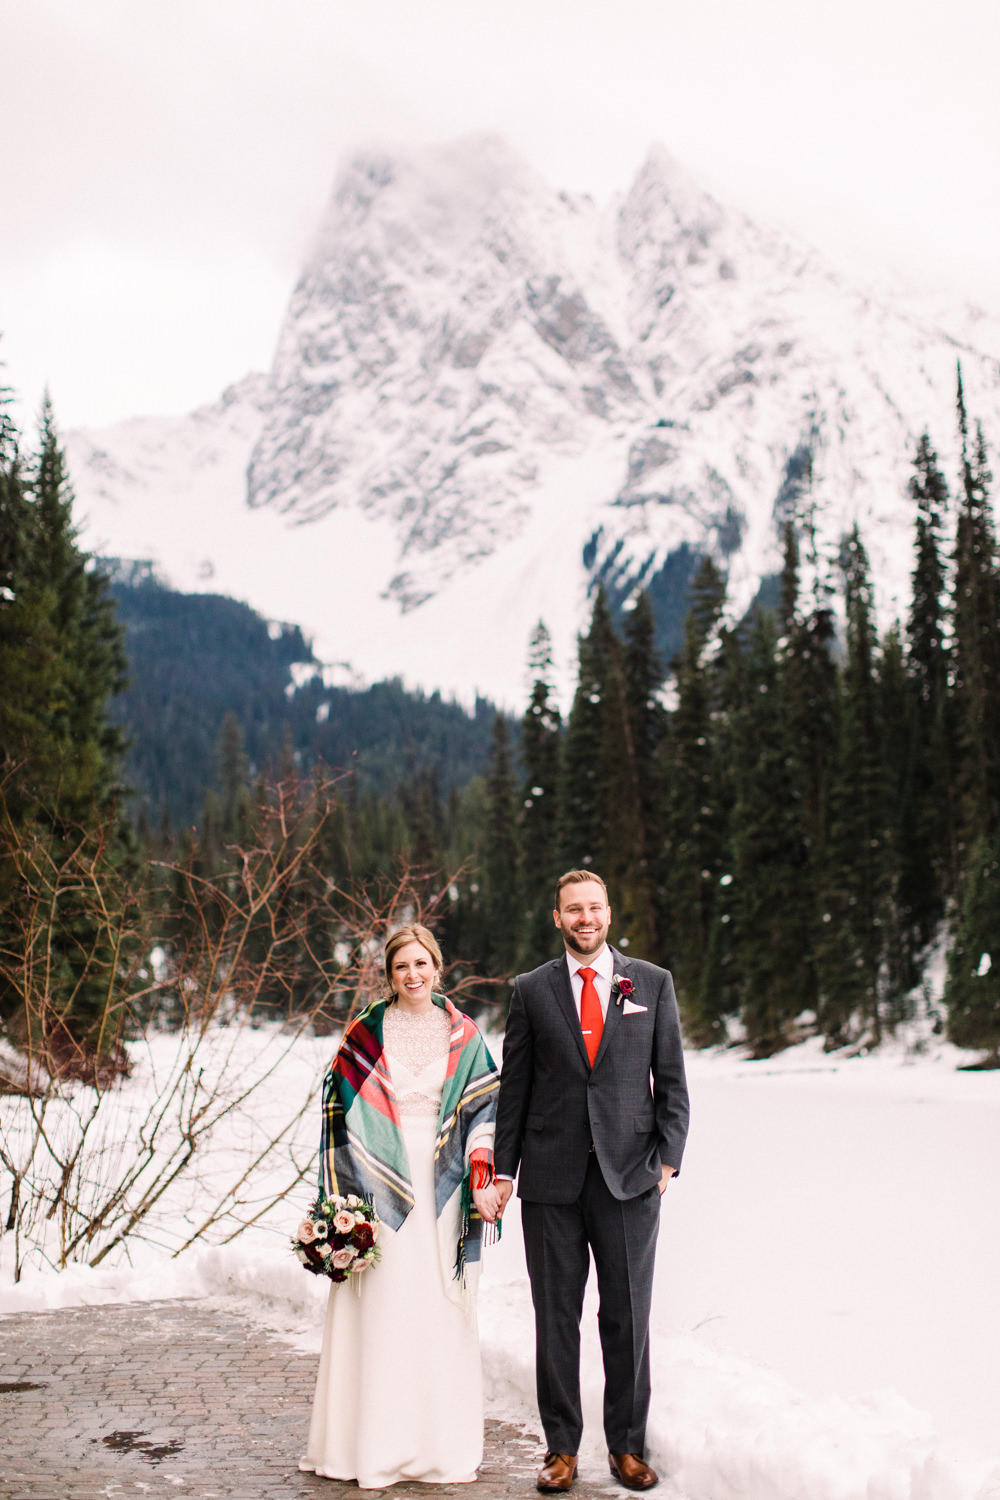 Matt-and-Jennas-Emerald-Lake-winter-wedding-55.jpg